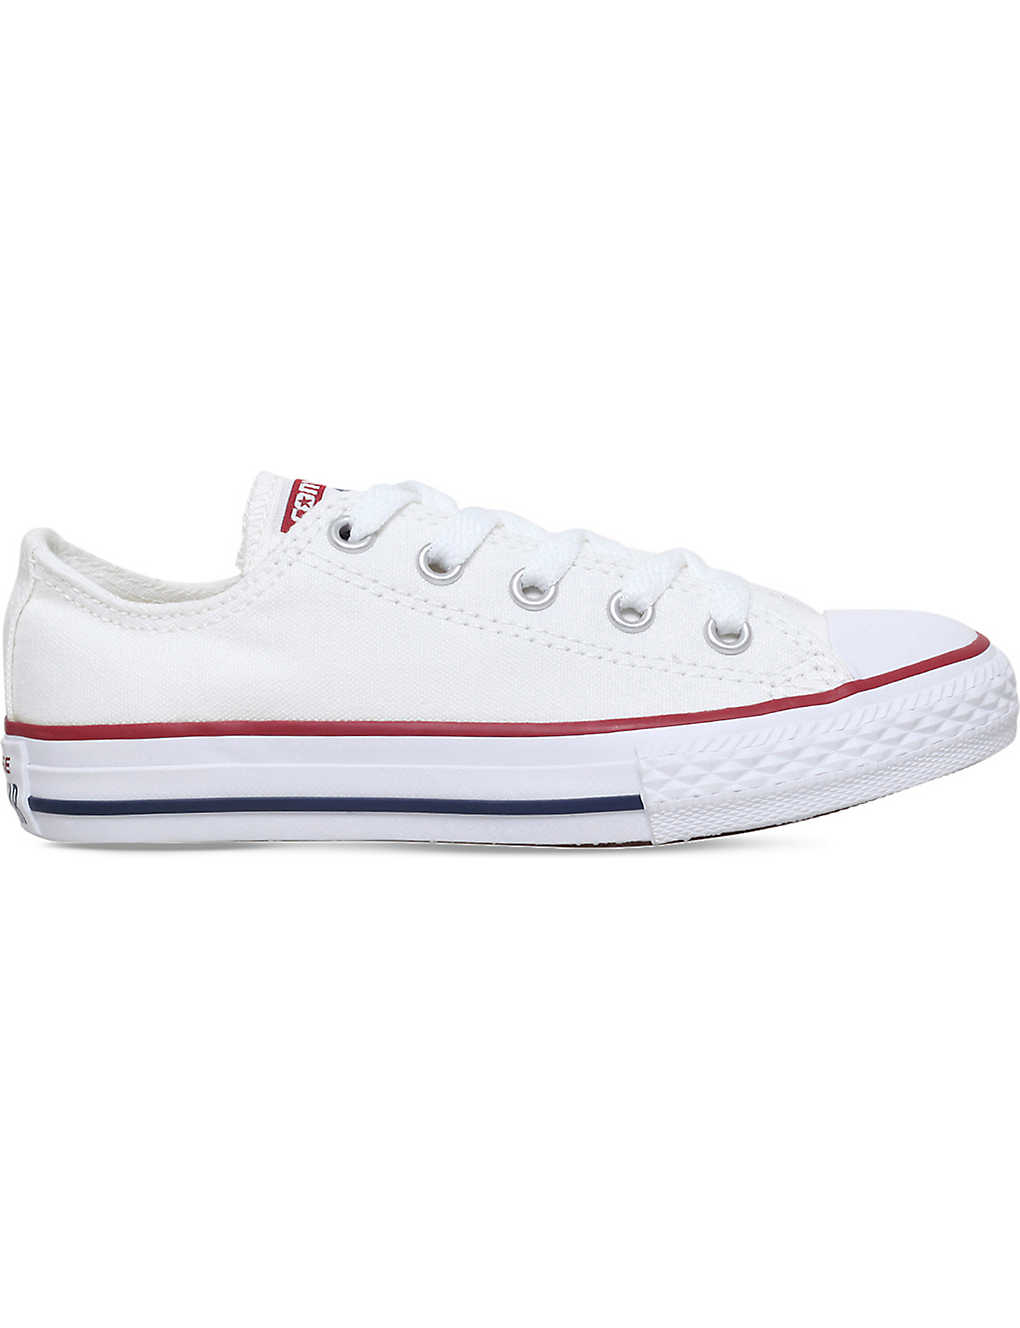 7b4a3e9f3b51 CONVERSE - Chuck Taylor All Star low sneakers 4-8 years